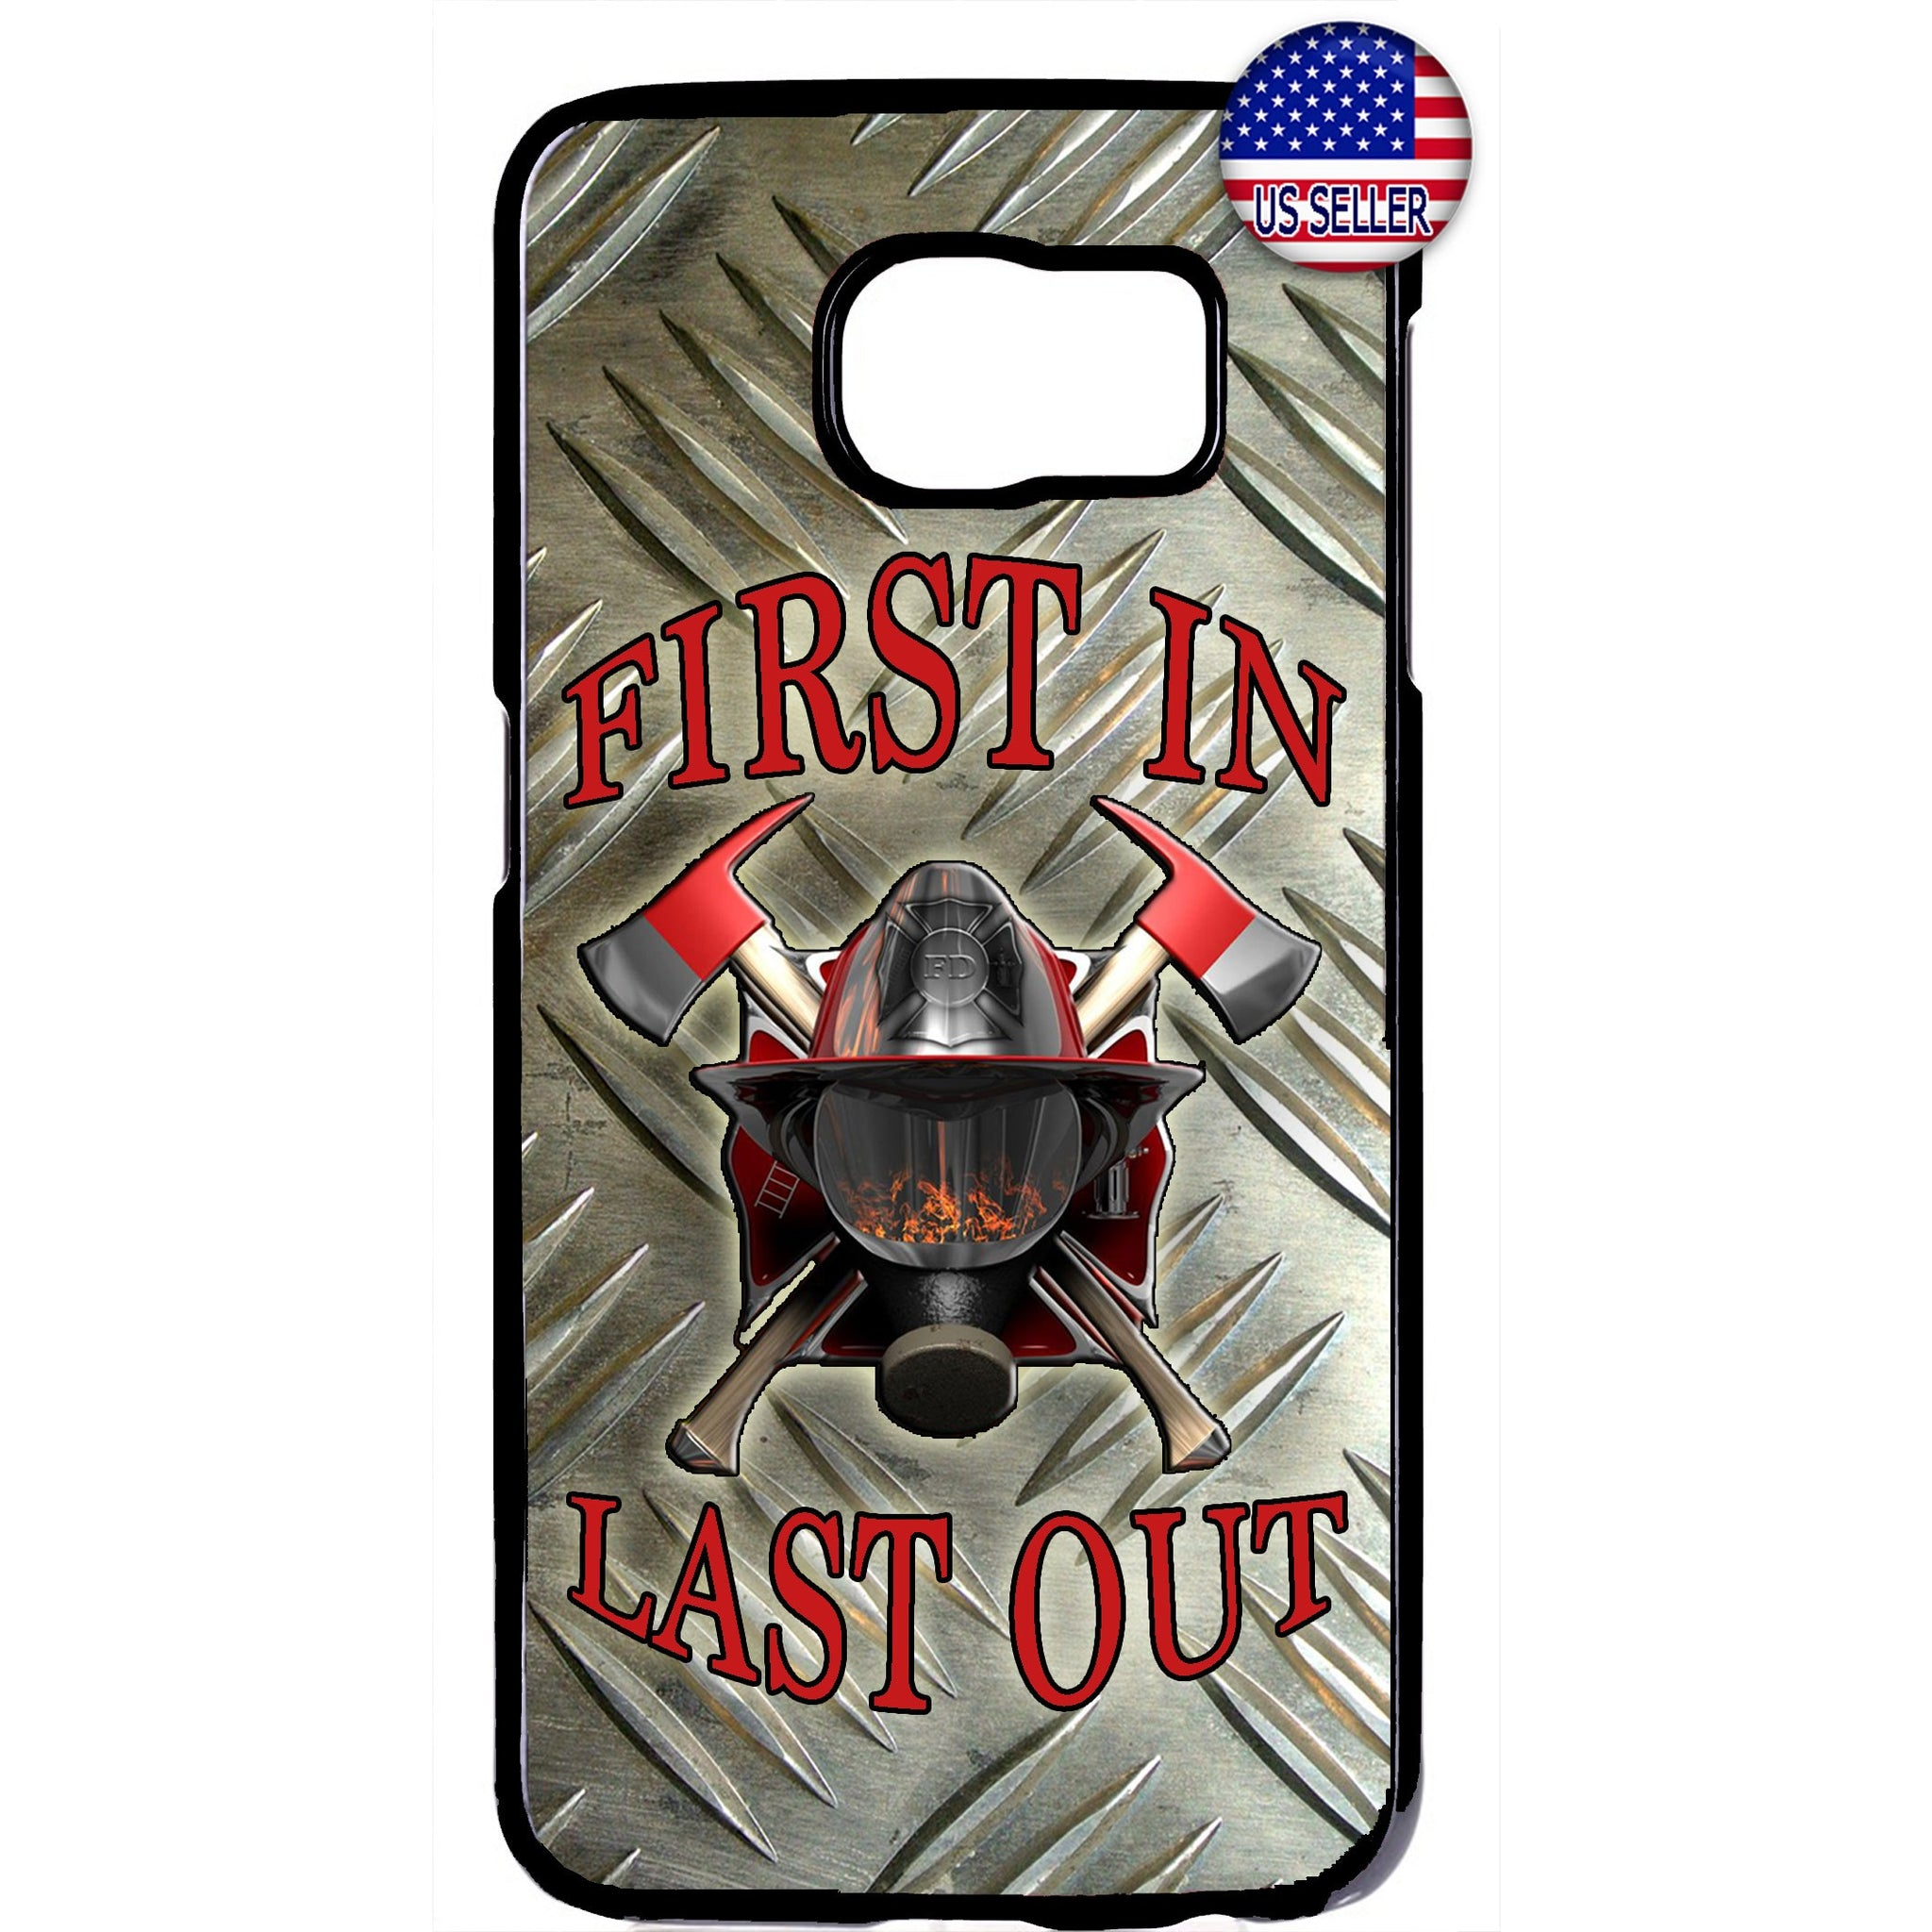 Fire Dept. Frist In Last Out Firefighter Rubber Case Cover For Samsung Galaxy